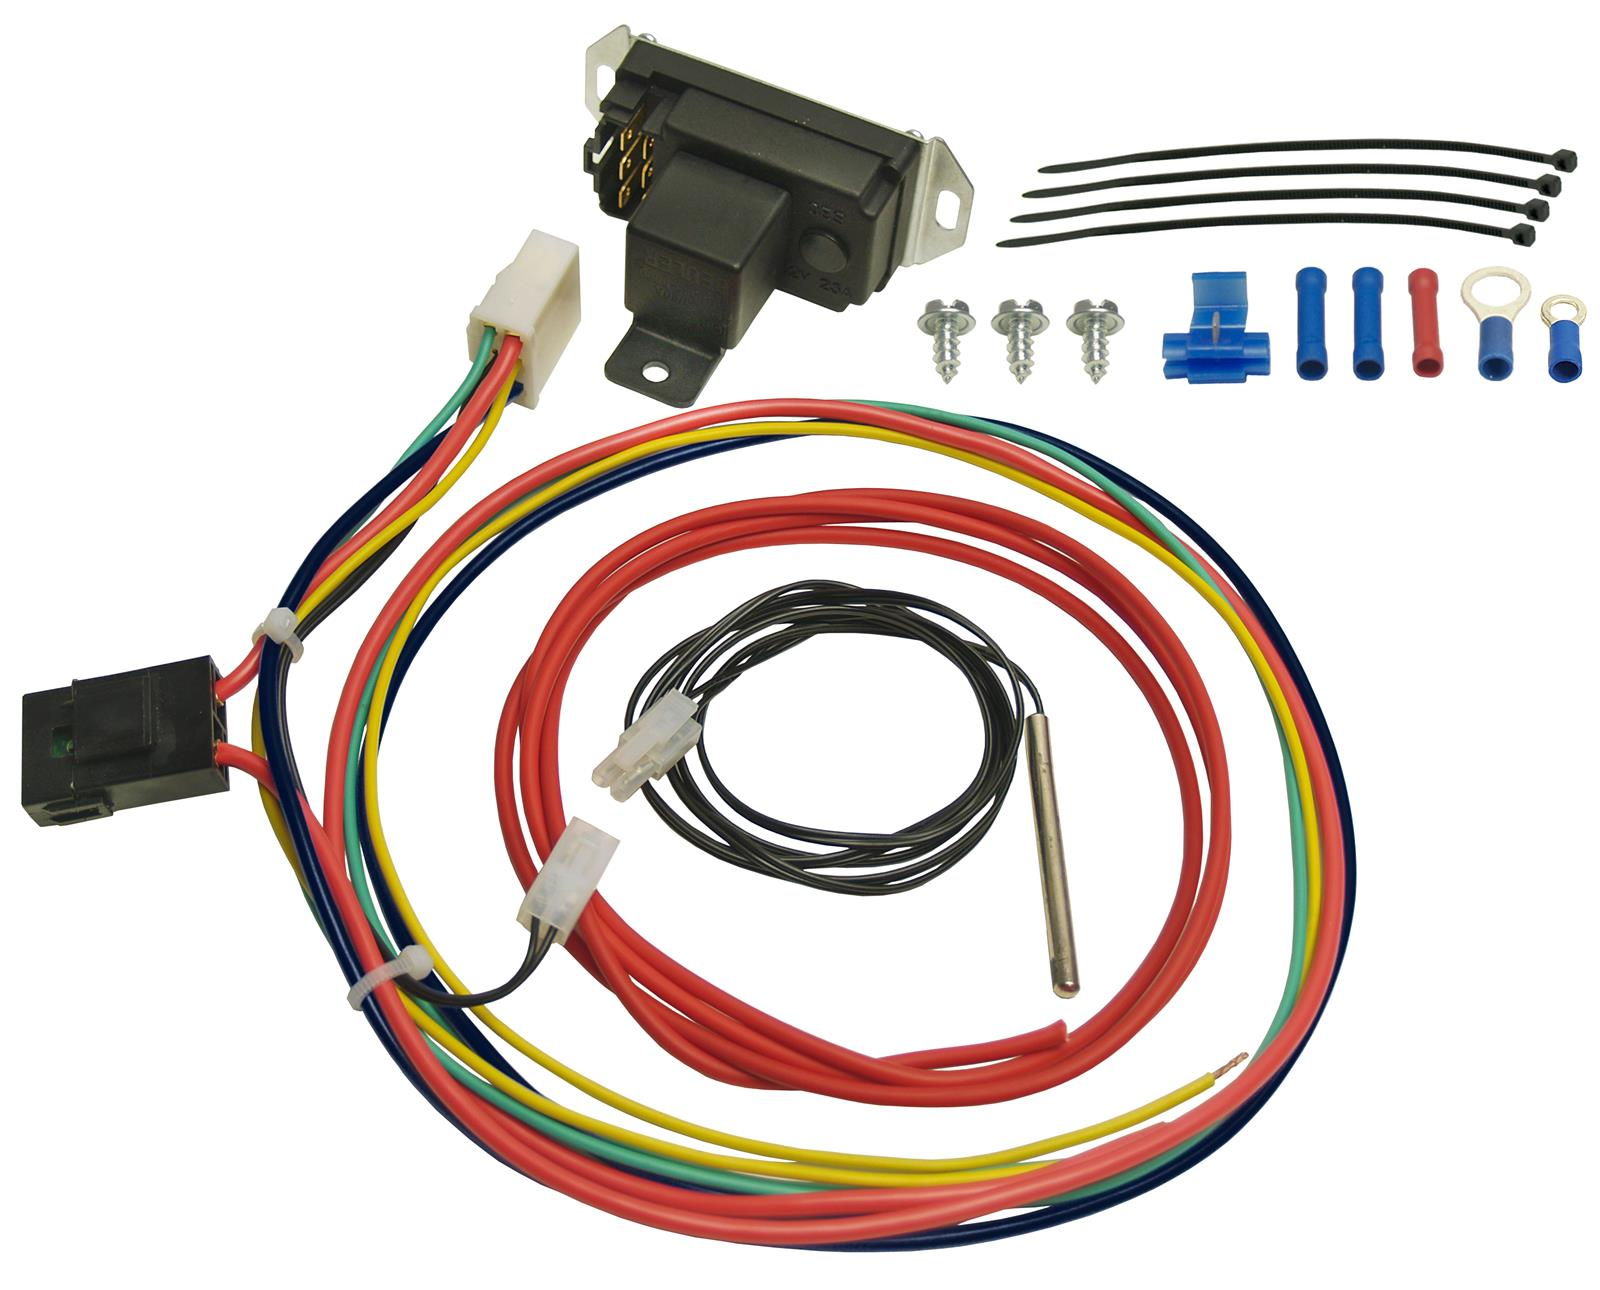 Derale Deluxe Adjustable Fan Controllers With Radiator Probes 16759 Spal Fans Wiring Diagram 1968 Free Shipping On Orders Over 99 At Summit Racing